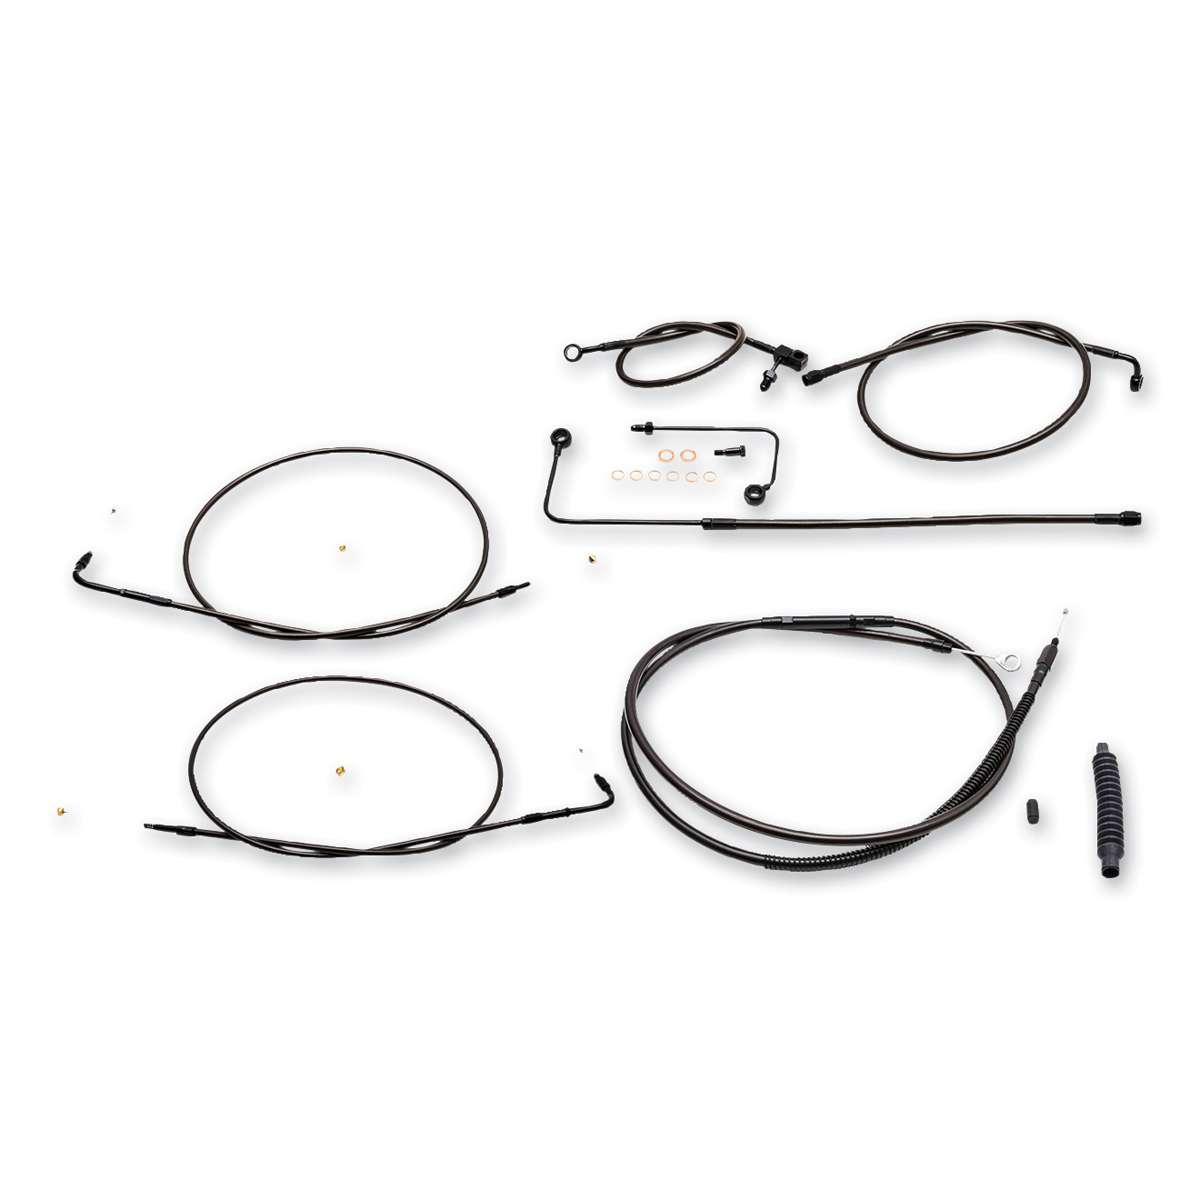 LA Choppers Midnight Cable/Brake Line Kit for 18″ -20″ Ape Hangers